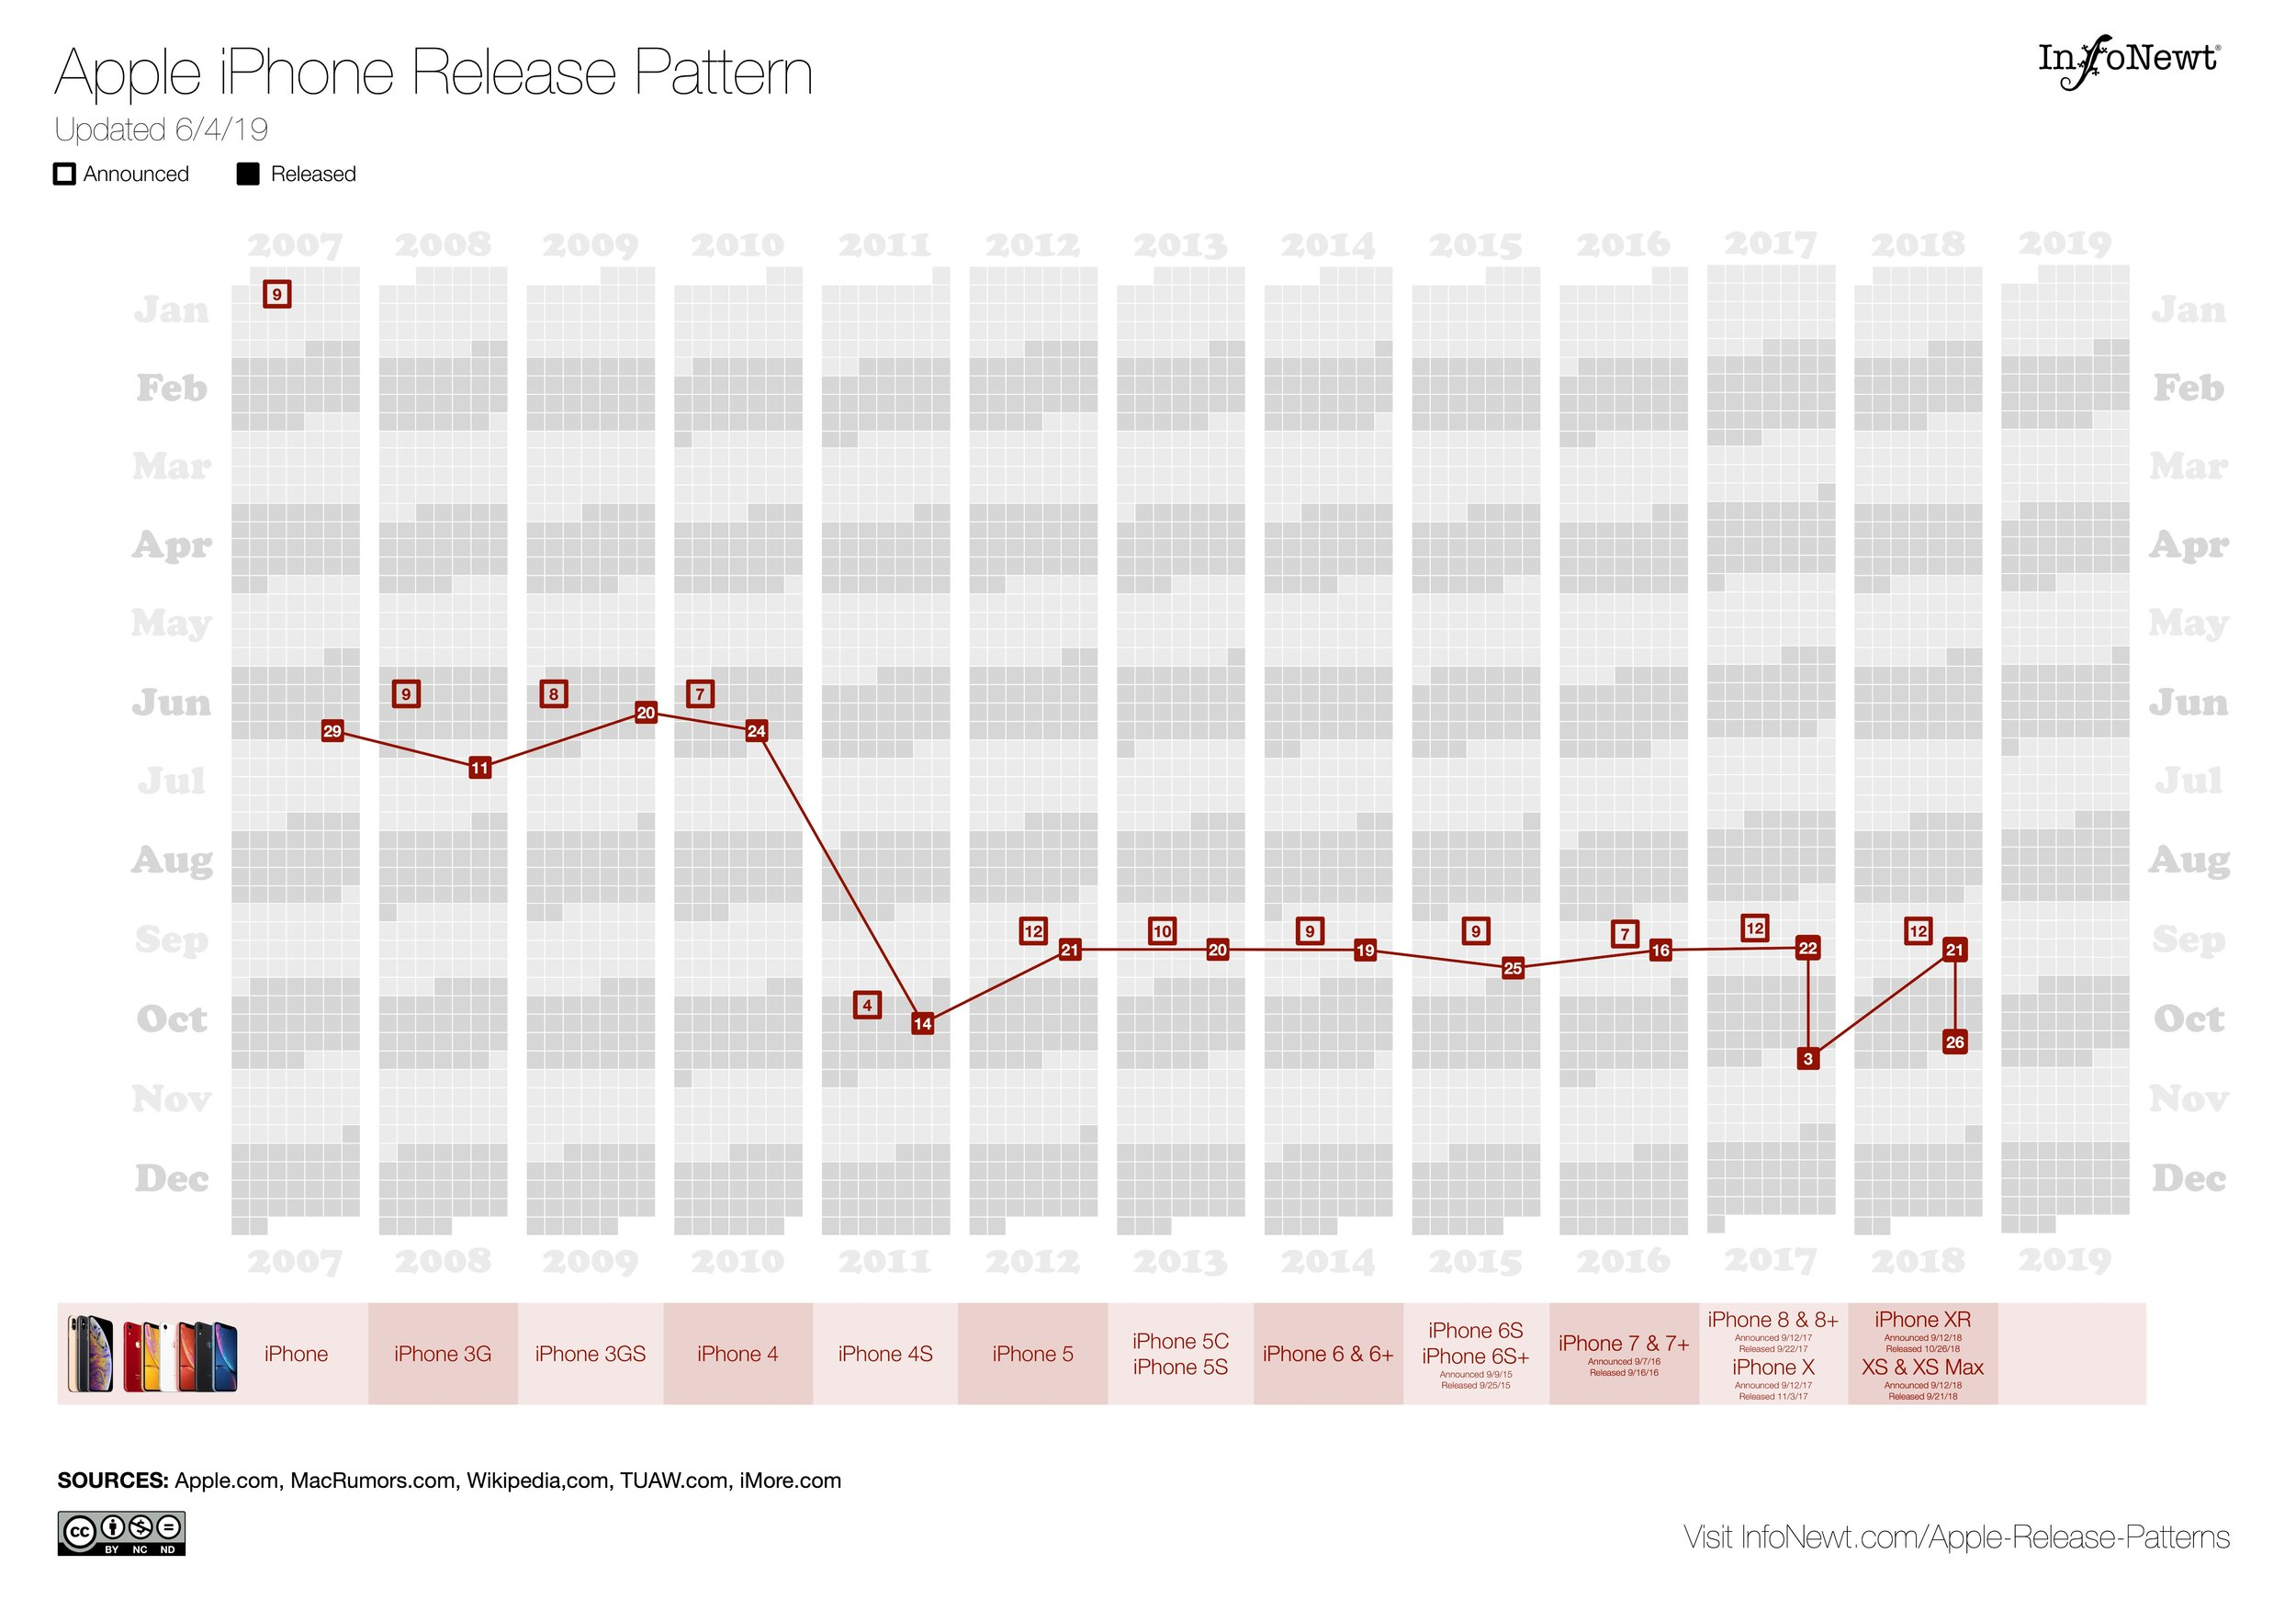 Apple iPhone Release Pattern